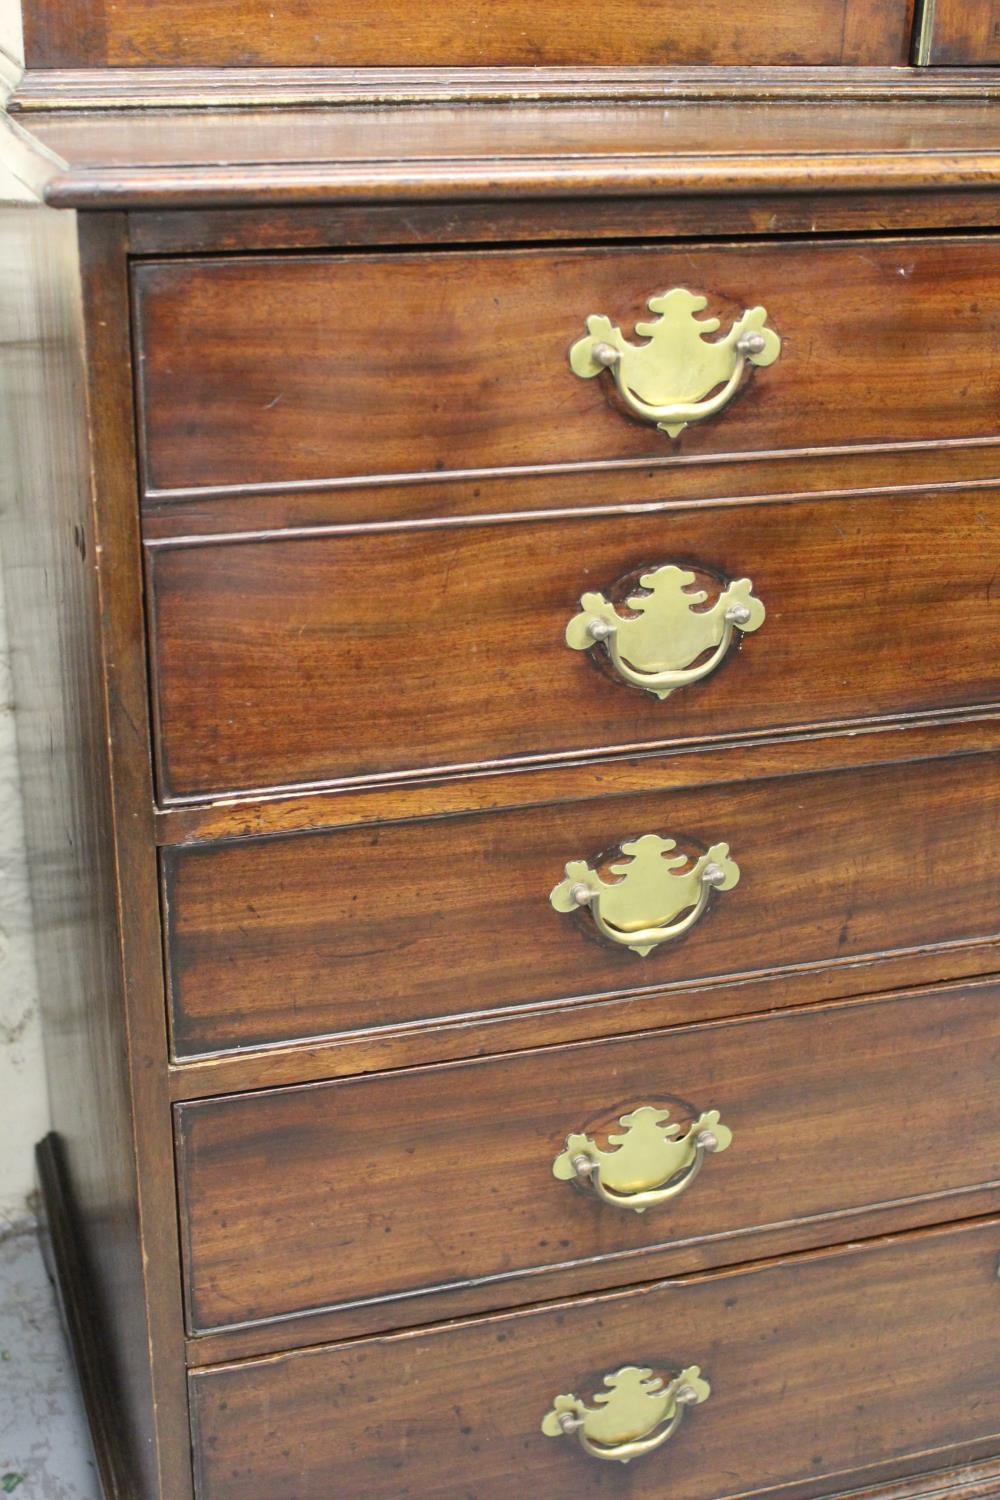 George III mahogany secretaire bookcase, the moulded cornice above a pair of bar glazed doors - Image 2 of 3